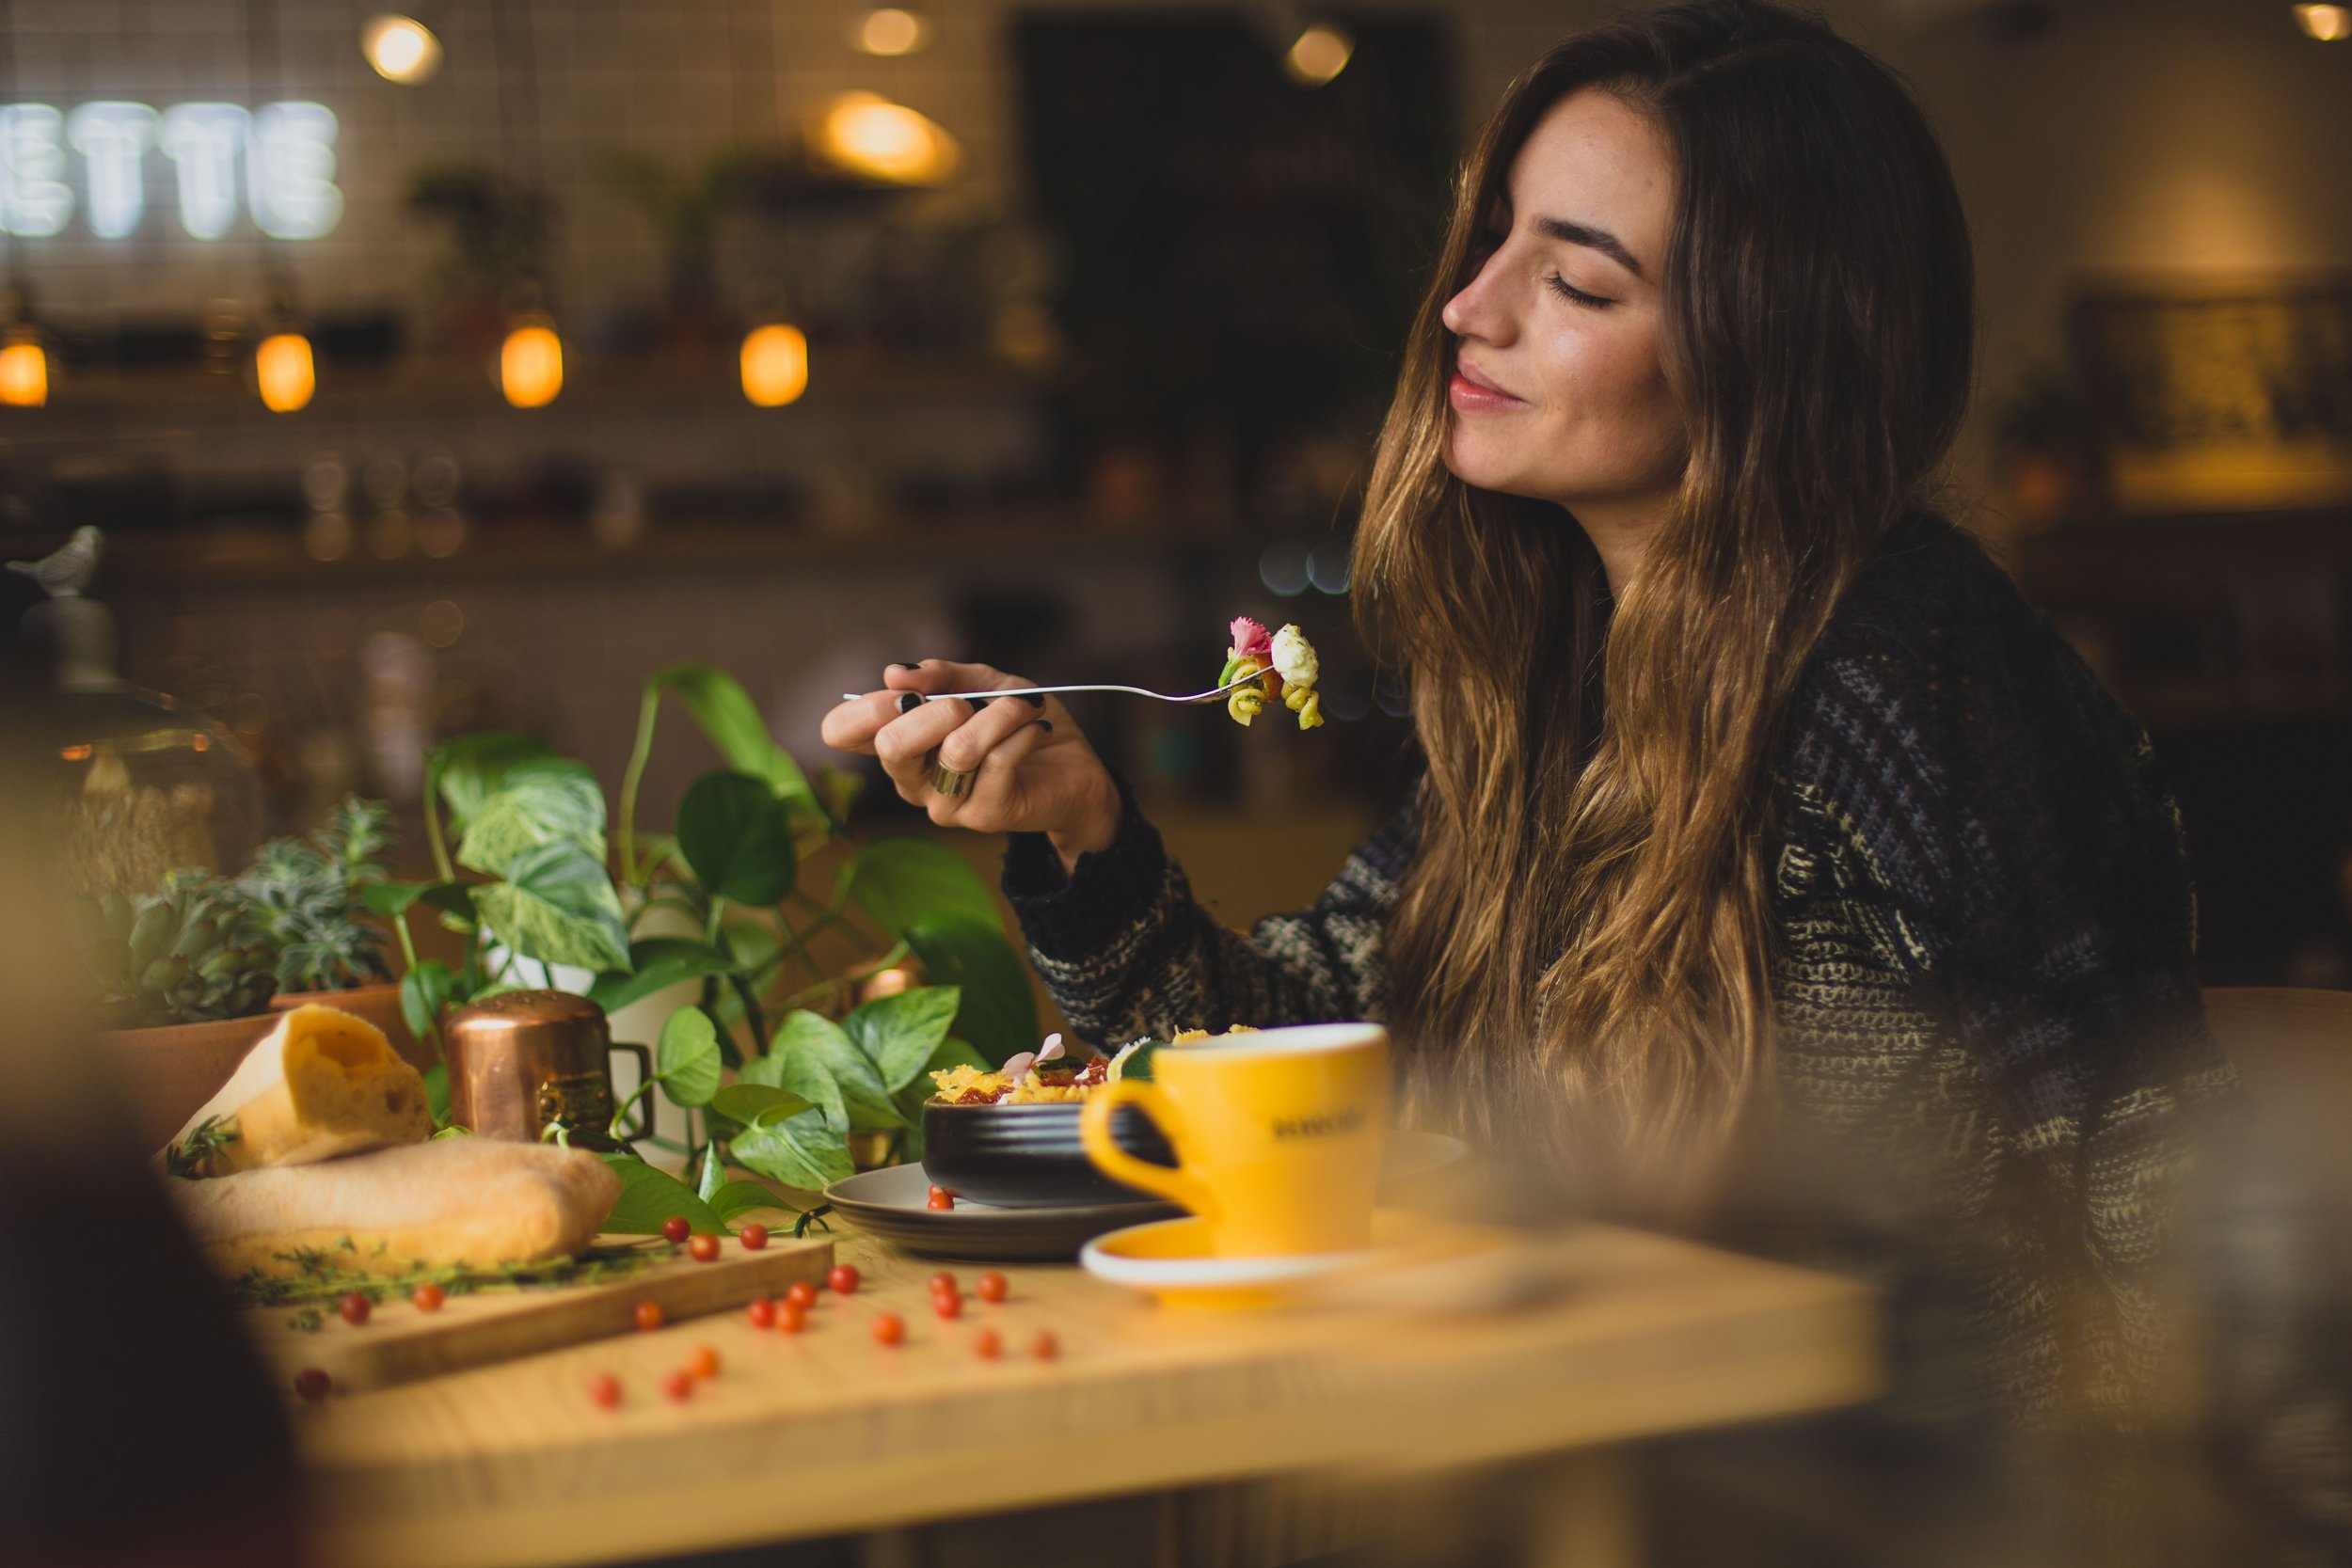 This lady looks like she is savoring the sights, smells, and taste of her food. Follow her example this holiday season by using all five senses when you eat. (  Pablo Merchán Montes    photo/   Unsplash  )